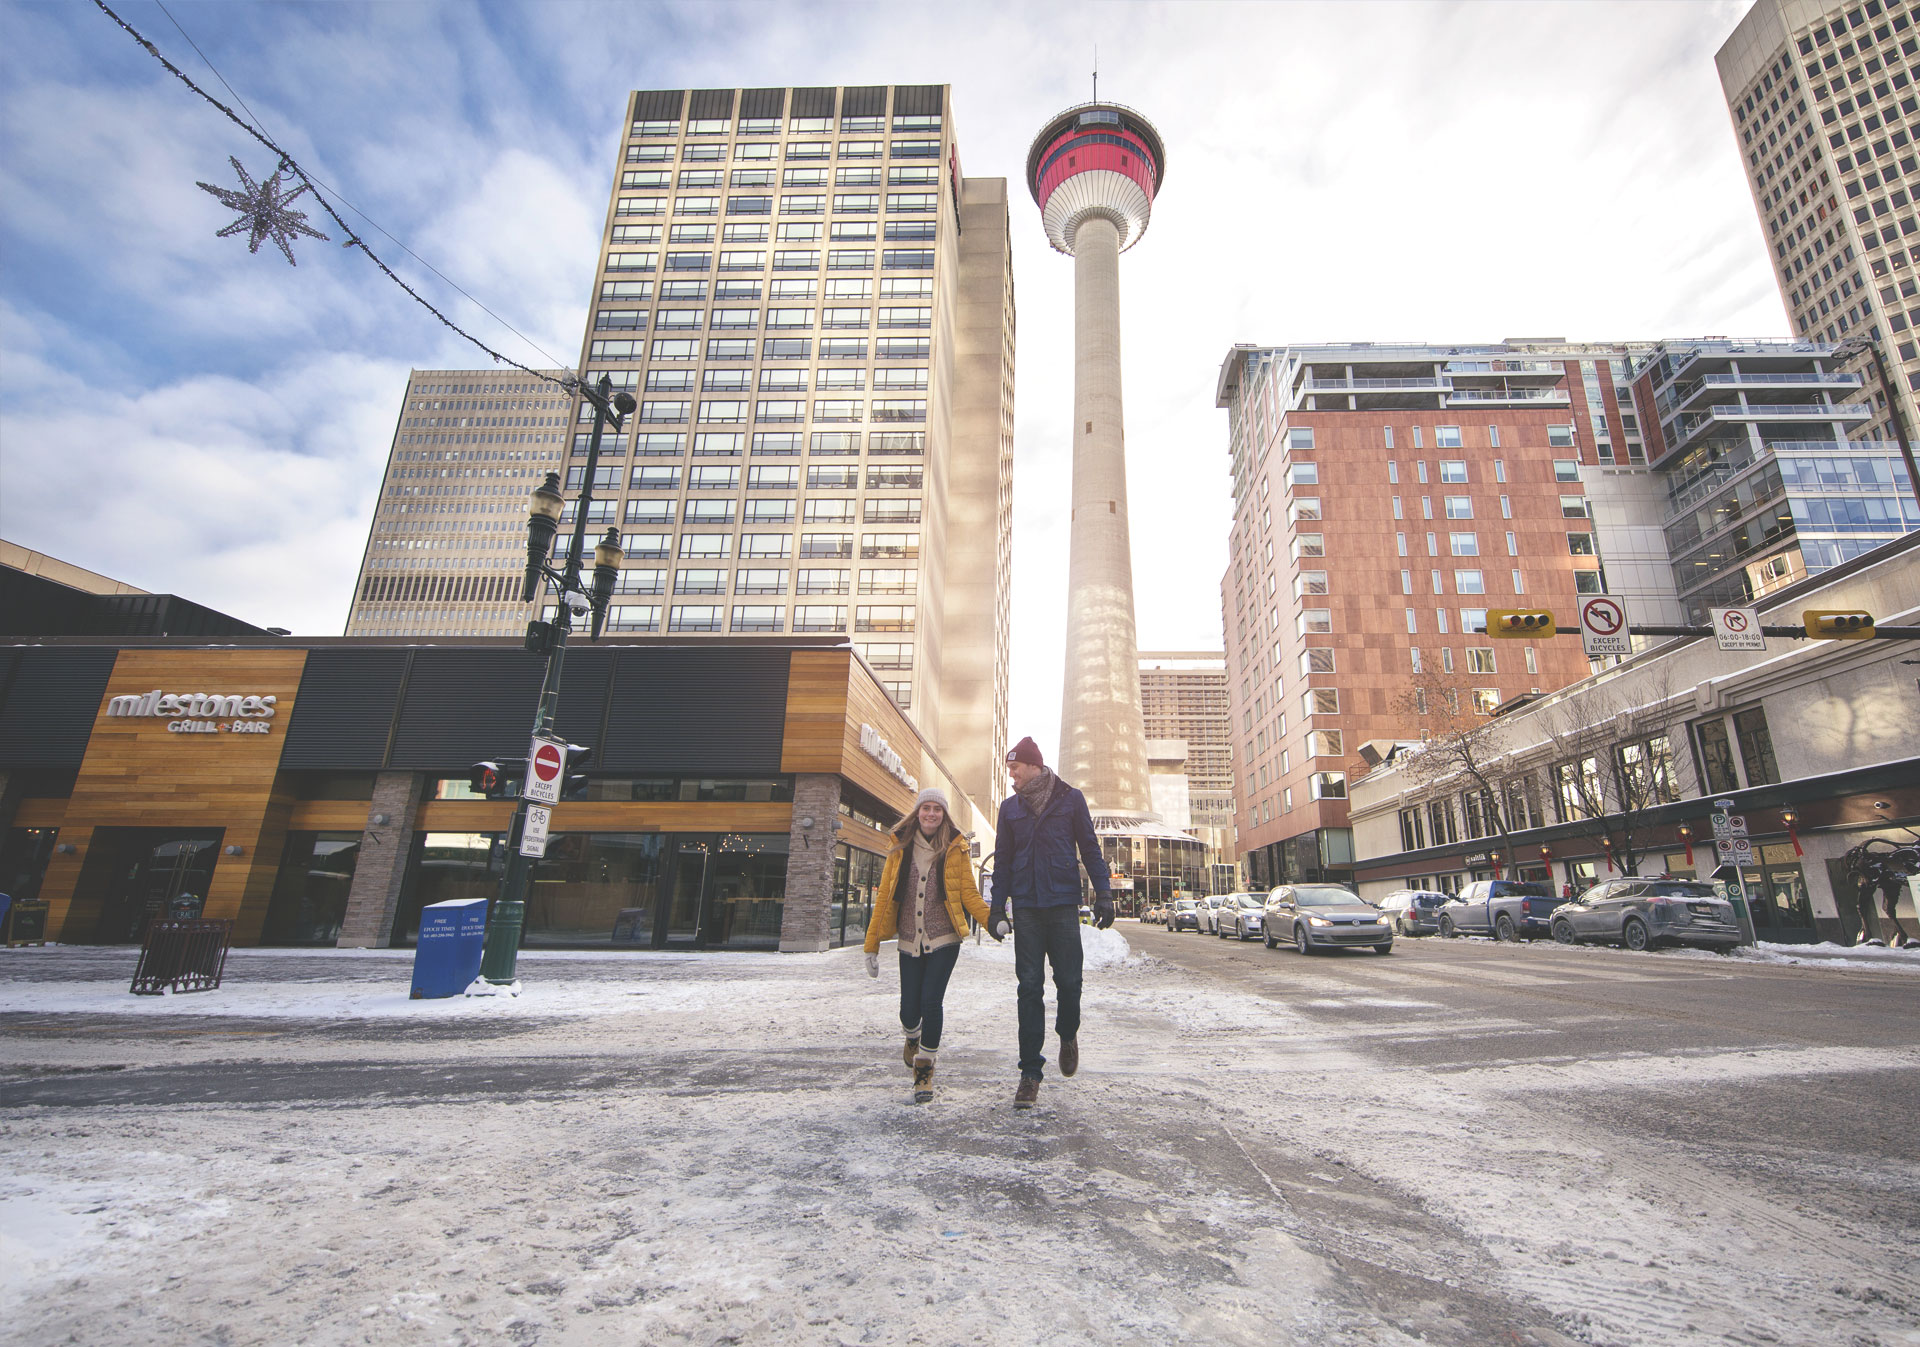 Calgary Tower from Stephen Avenue Walk (Photo credit: Travel Alberta/Roth & Ramberg)